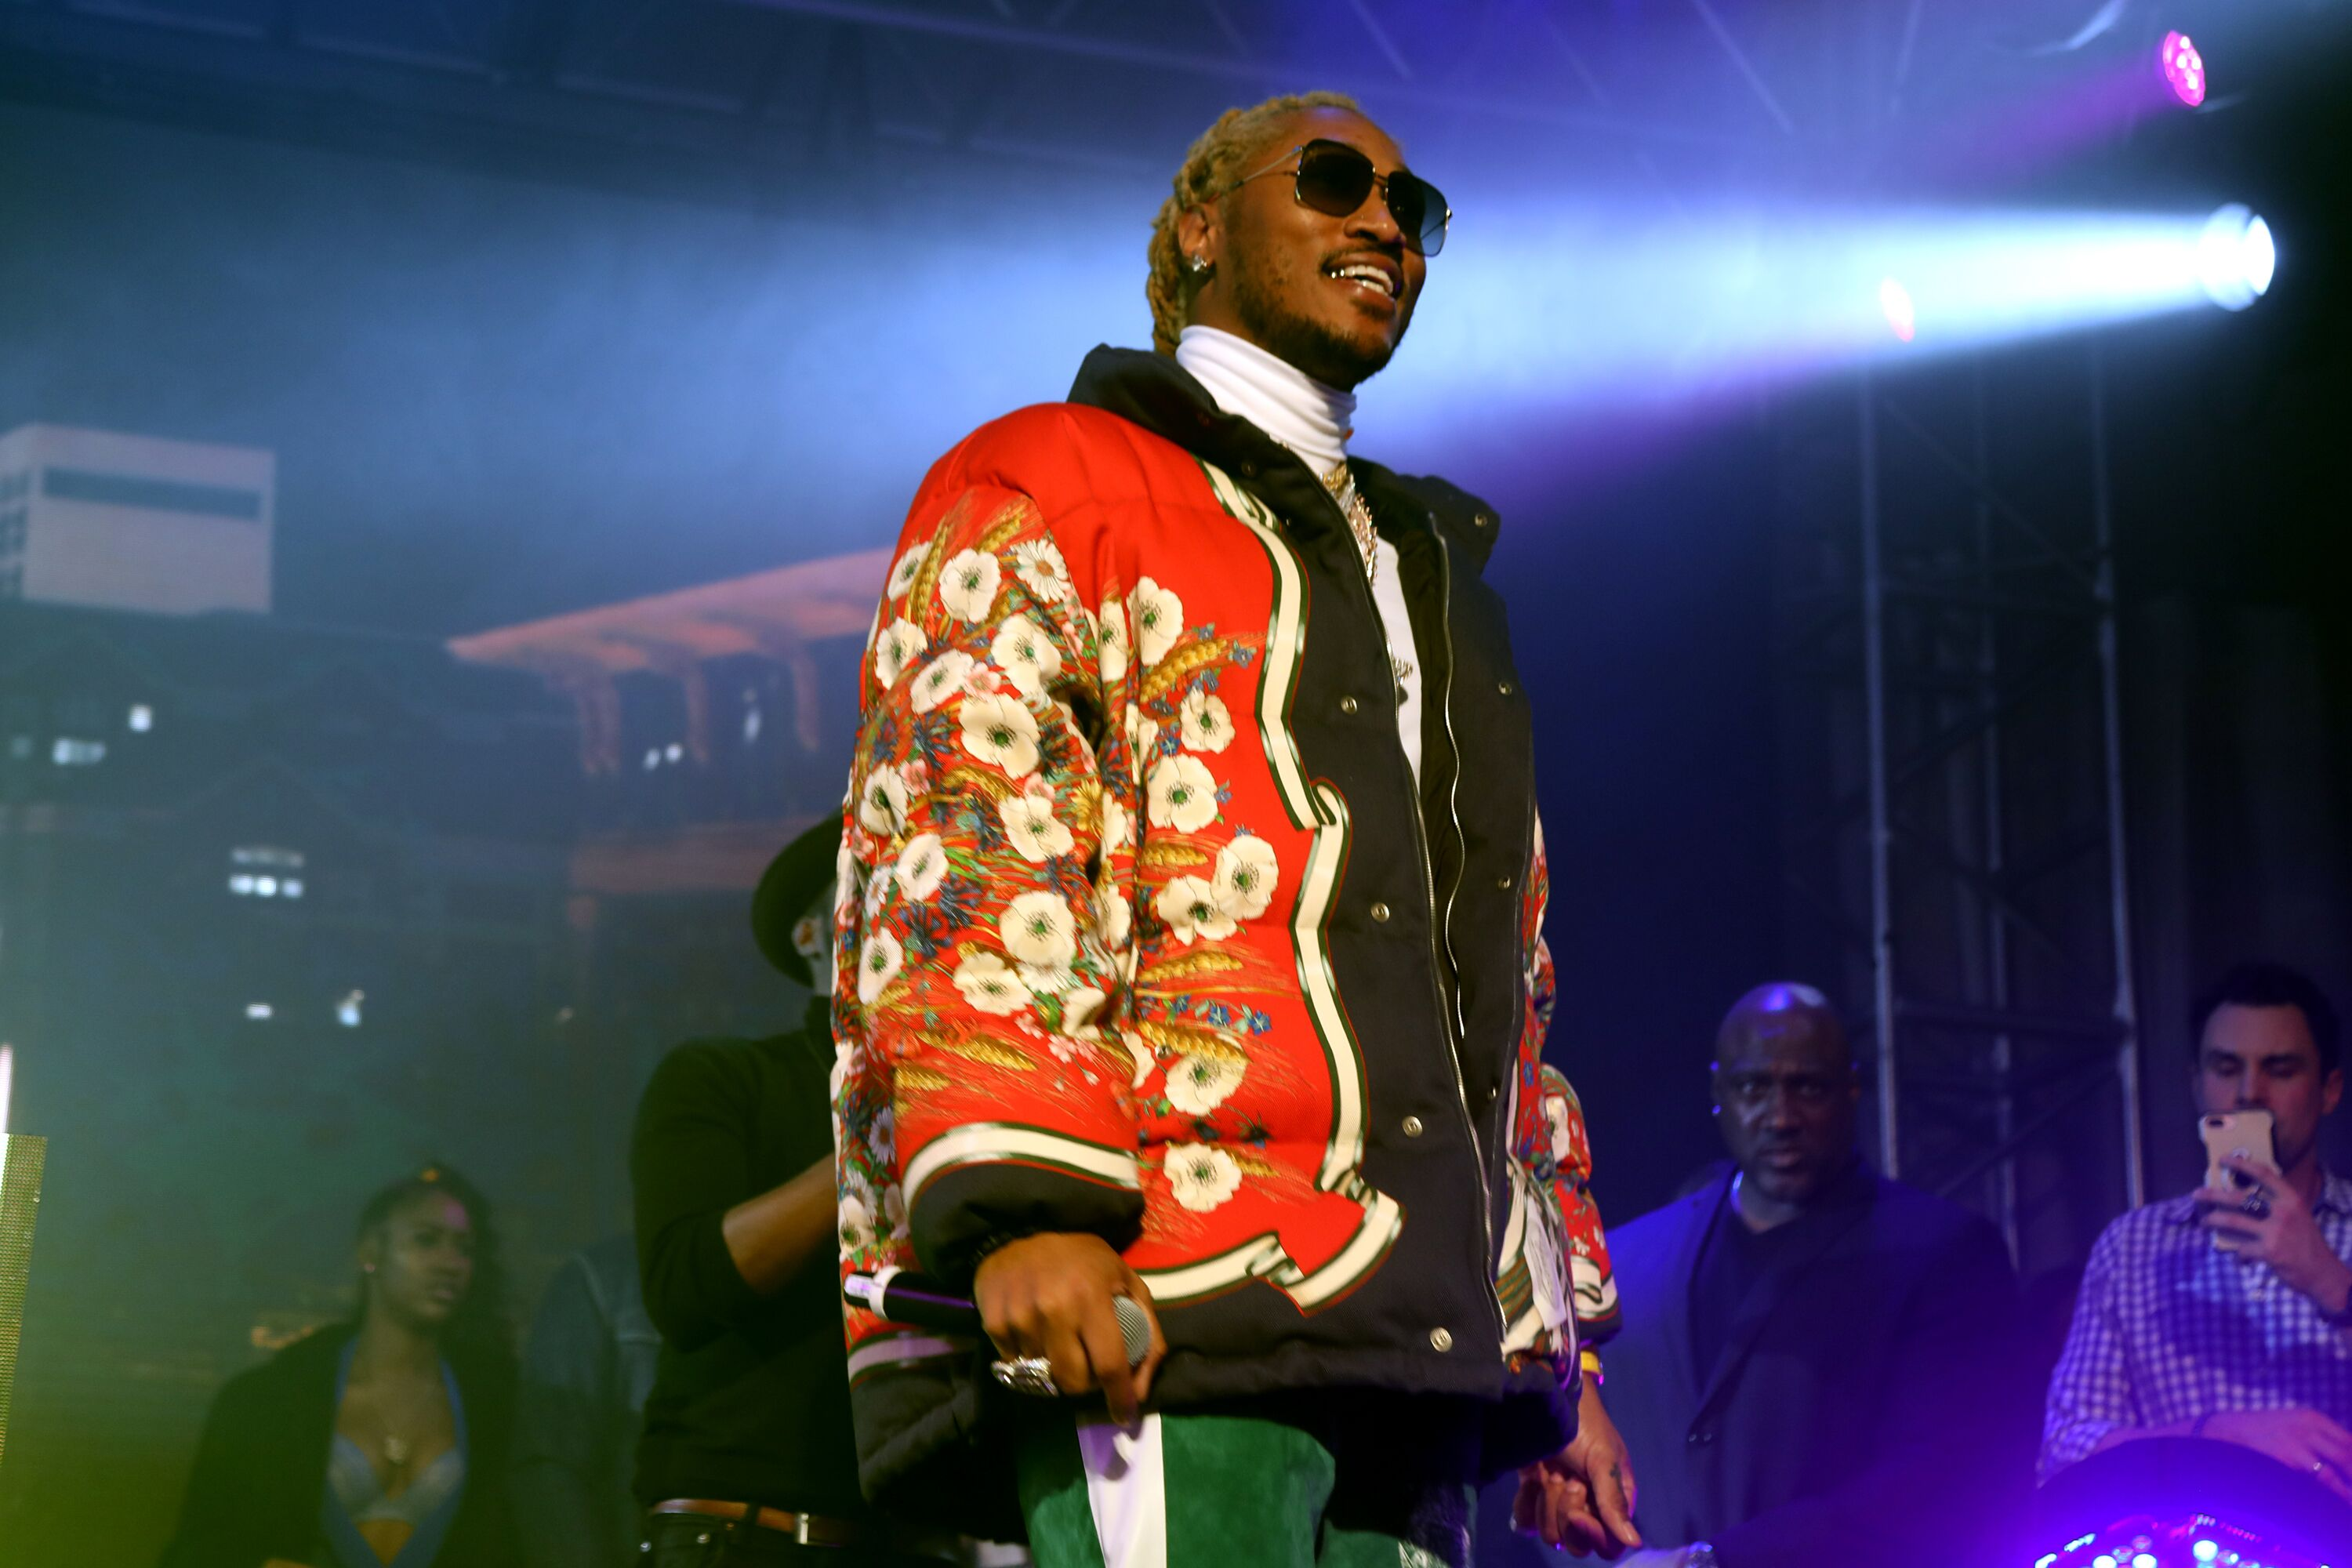 Rapper Future in concert/ Source: Getty Images